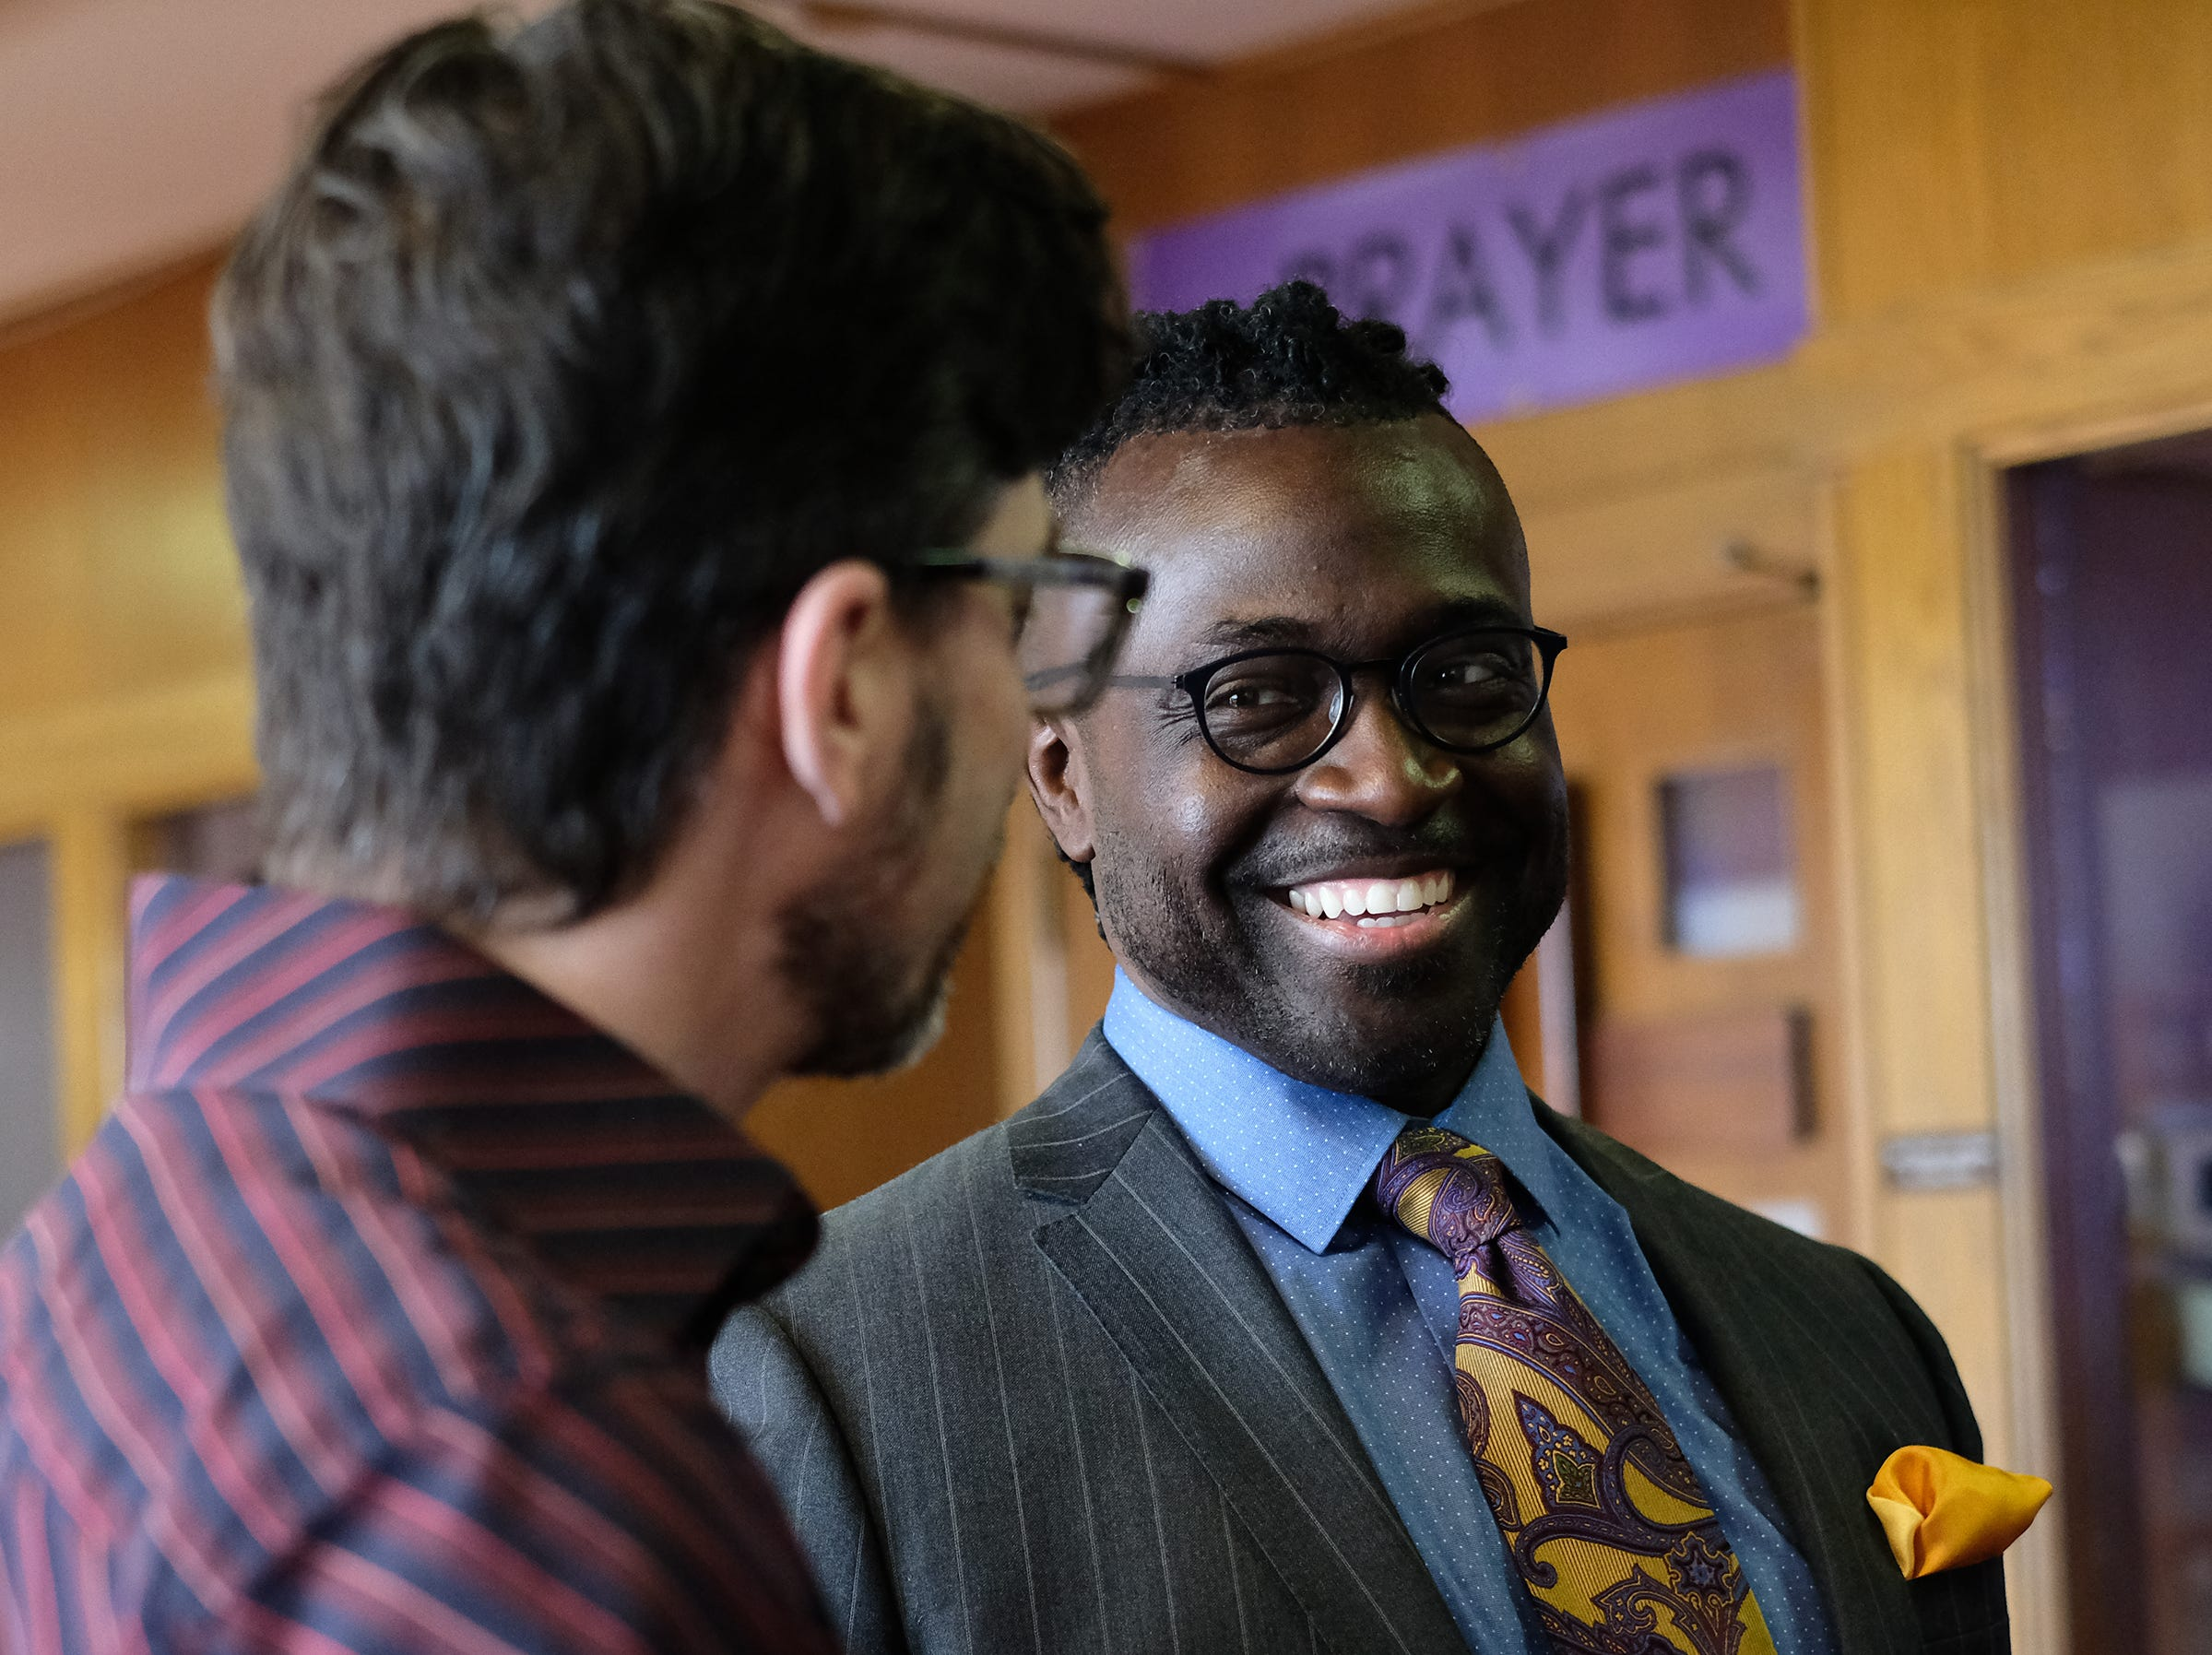 Pastor Sean Holland of Epicenter of Worship Church, right, welcomes and talks to Pastor, Tom Arthur of Sycamore Creek Church before services Sunday, Jan. 20, 2019. The congregation of Sycamore Creek a predominately white congregation joined Epicenter a predominately black congregation, for its celebration of the Rev. Martin Luther King Jr. A luncheon and panel discussion were also part of the event.